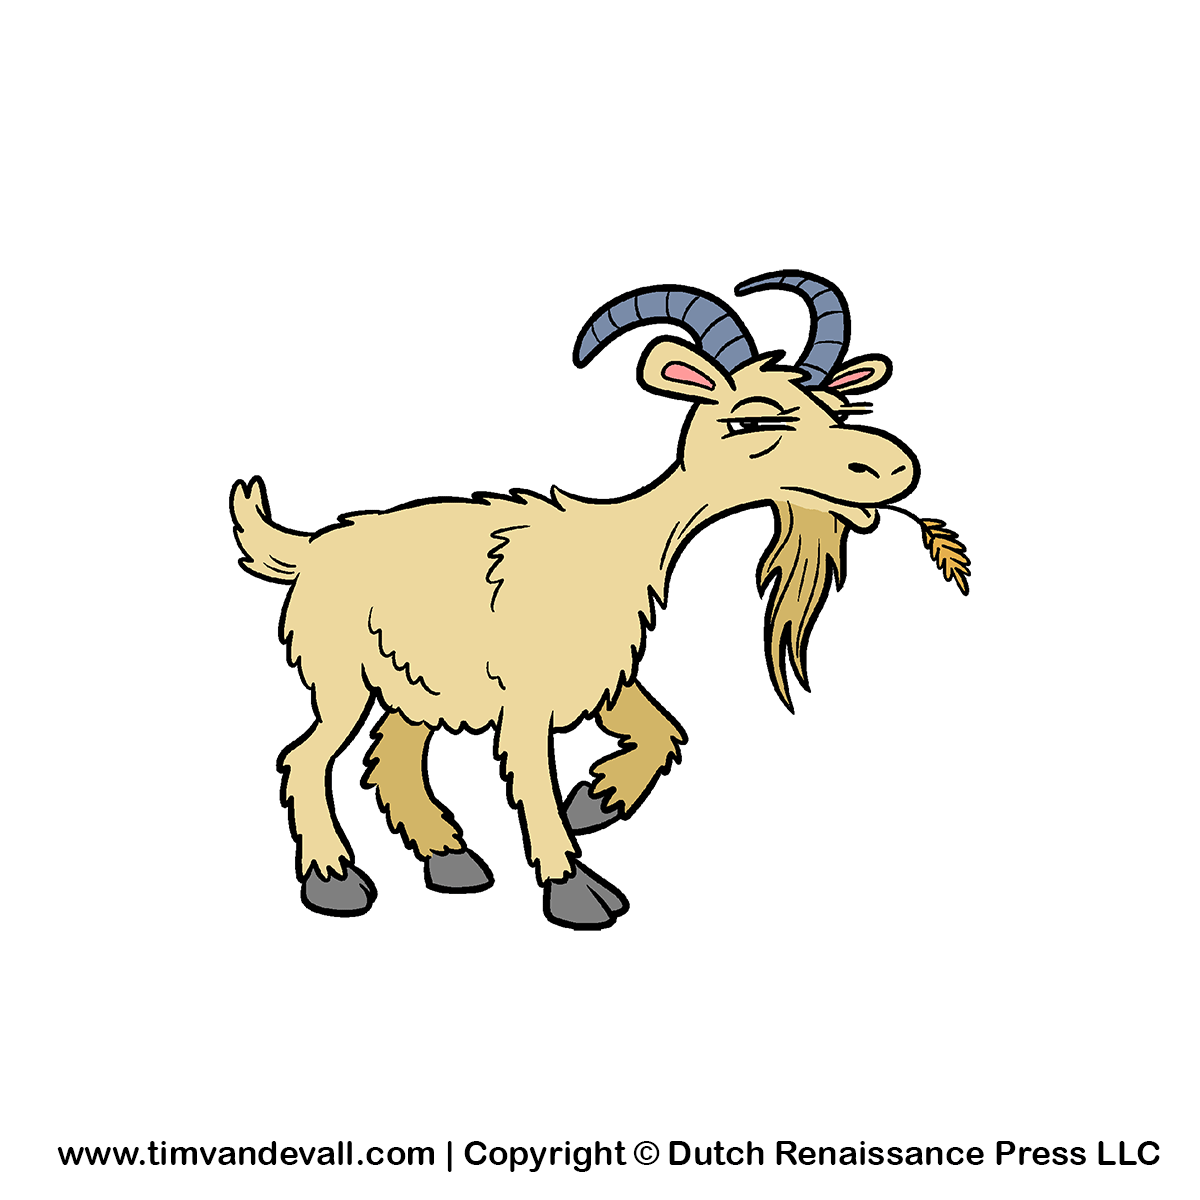 Goat black and white panda free images clipart free clip art images